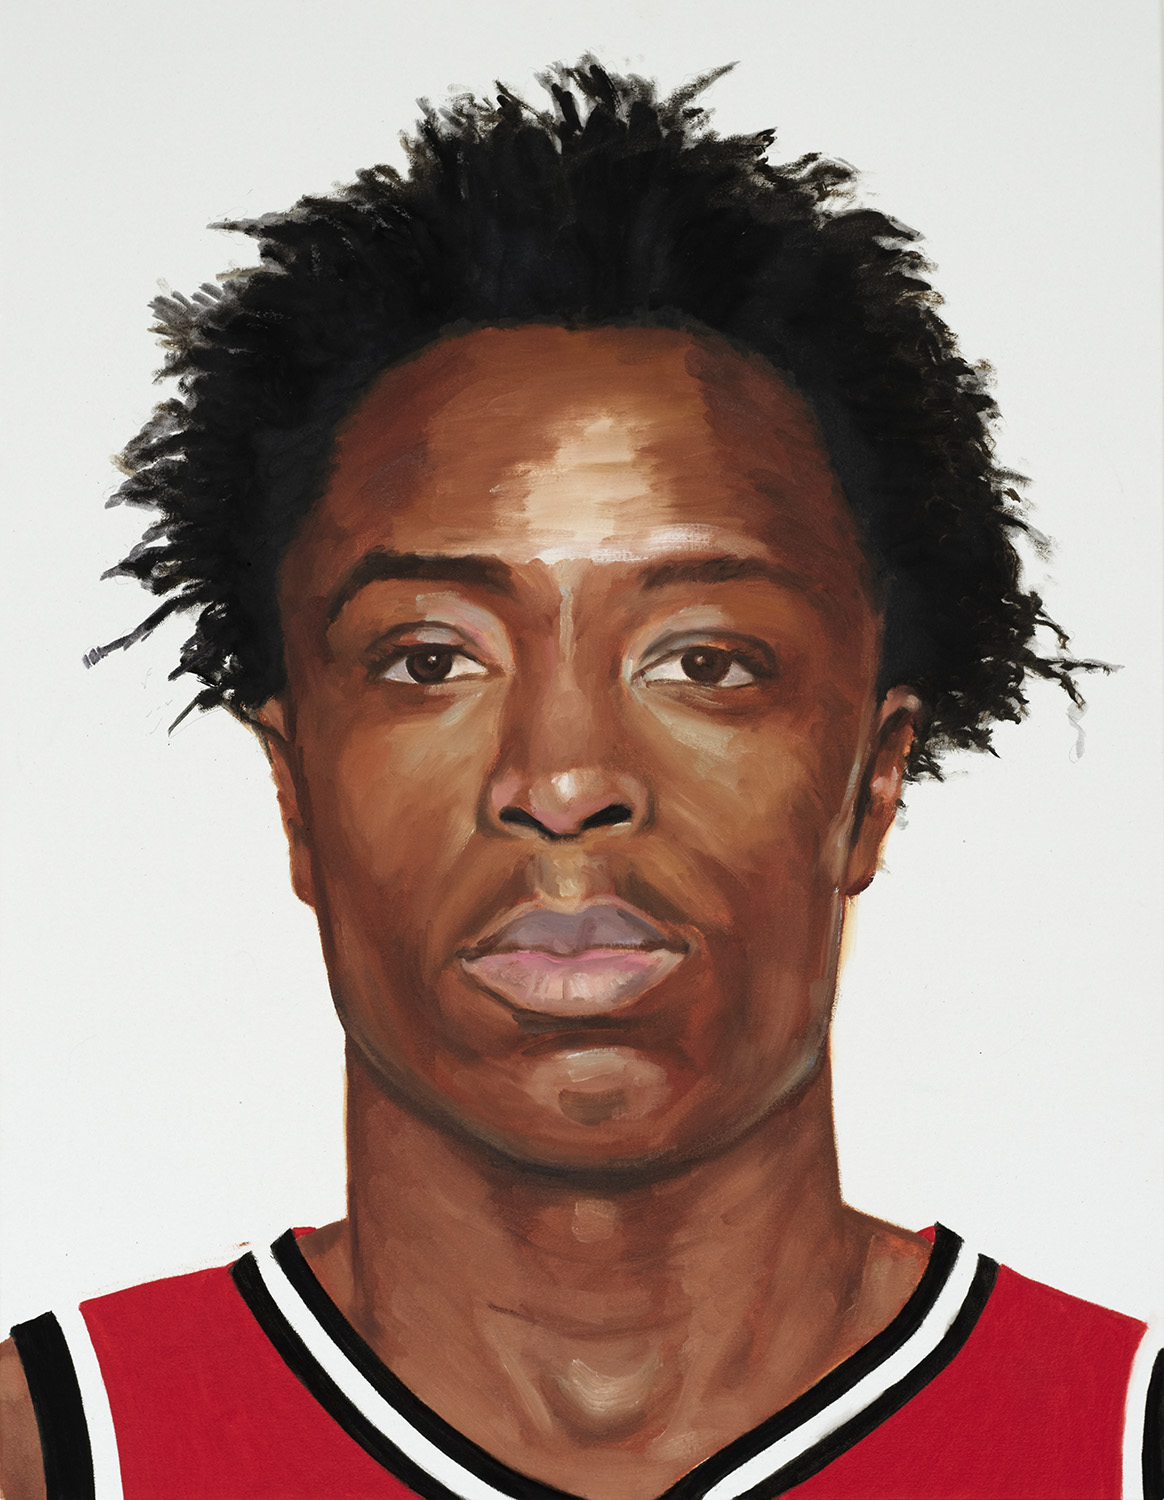 OG Anunoby (from the series Organizing Principle), 2019, oil on canvas, 26 x 20 inches